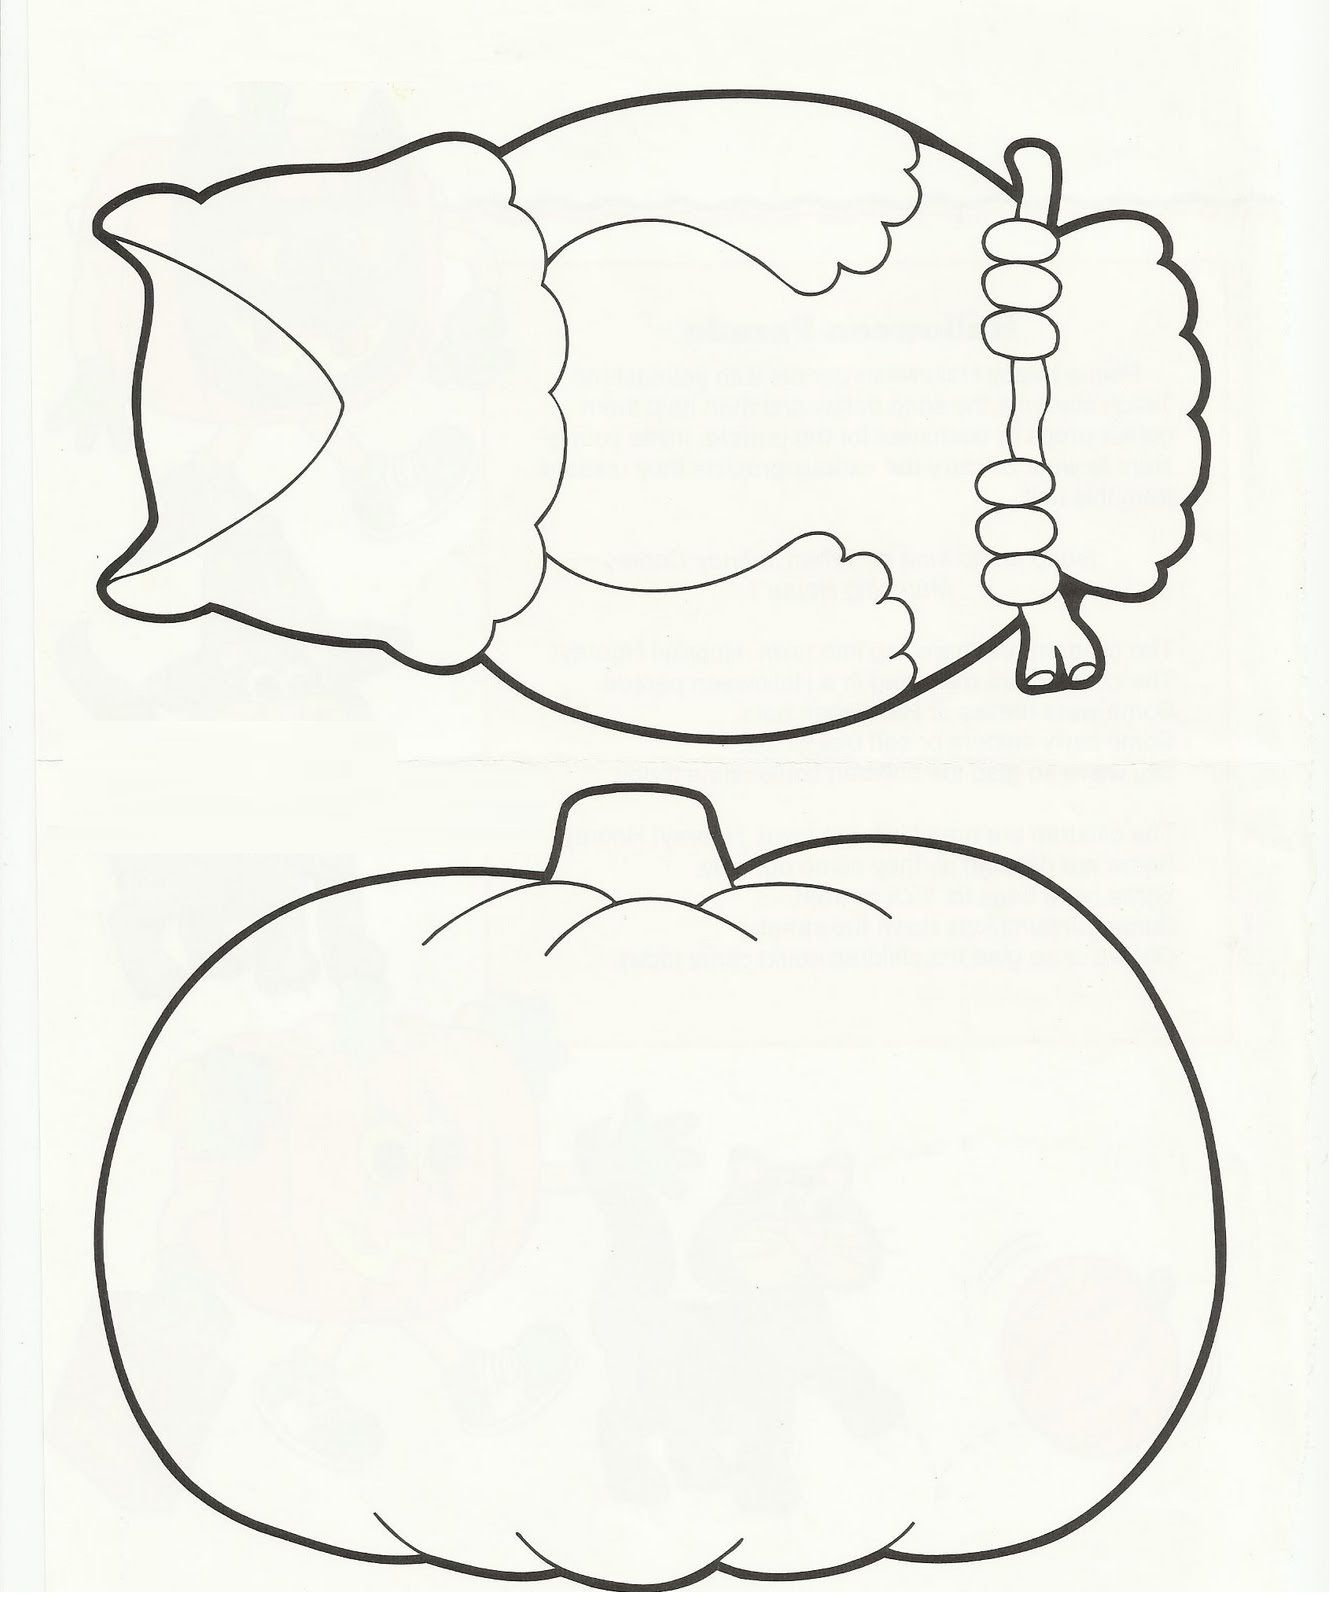 Printable Halloween Owl And Pumpkin Templates Activity